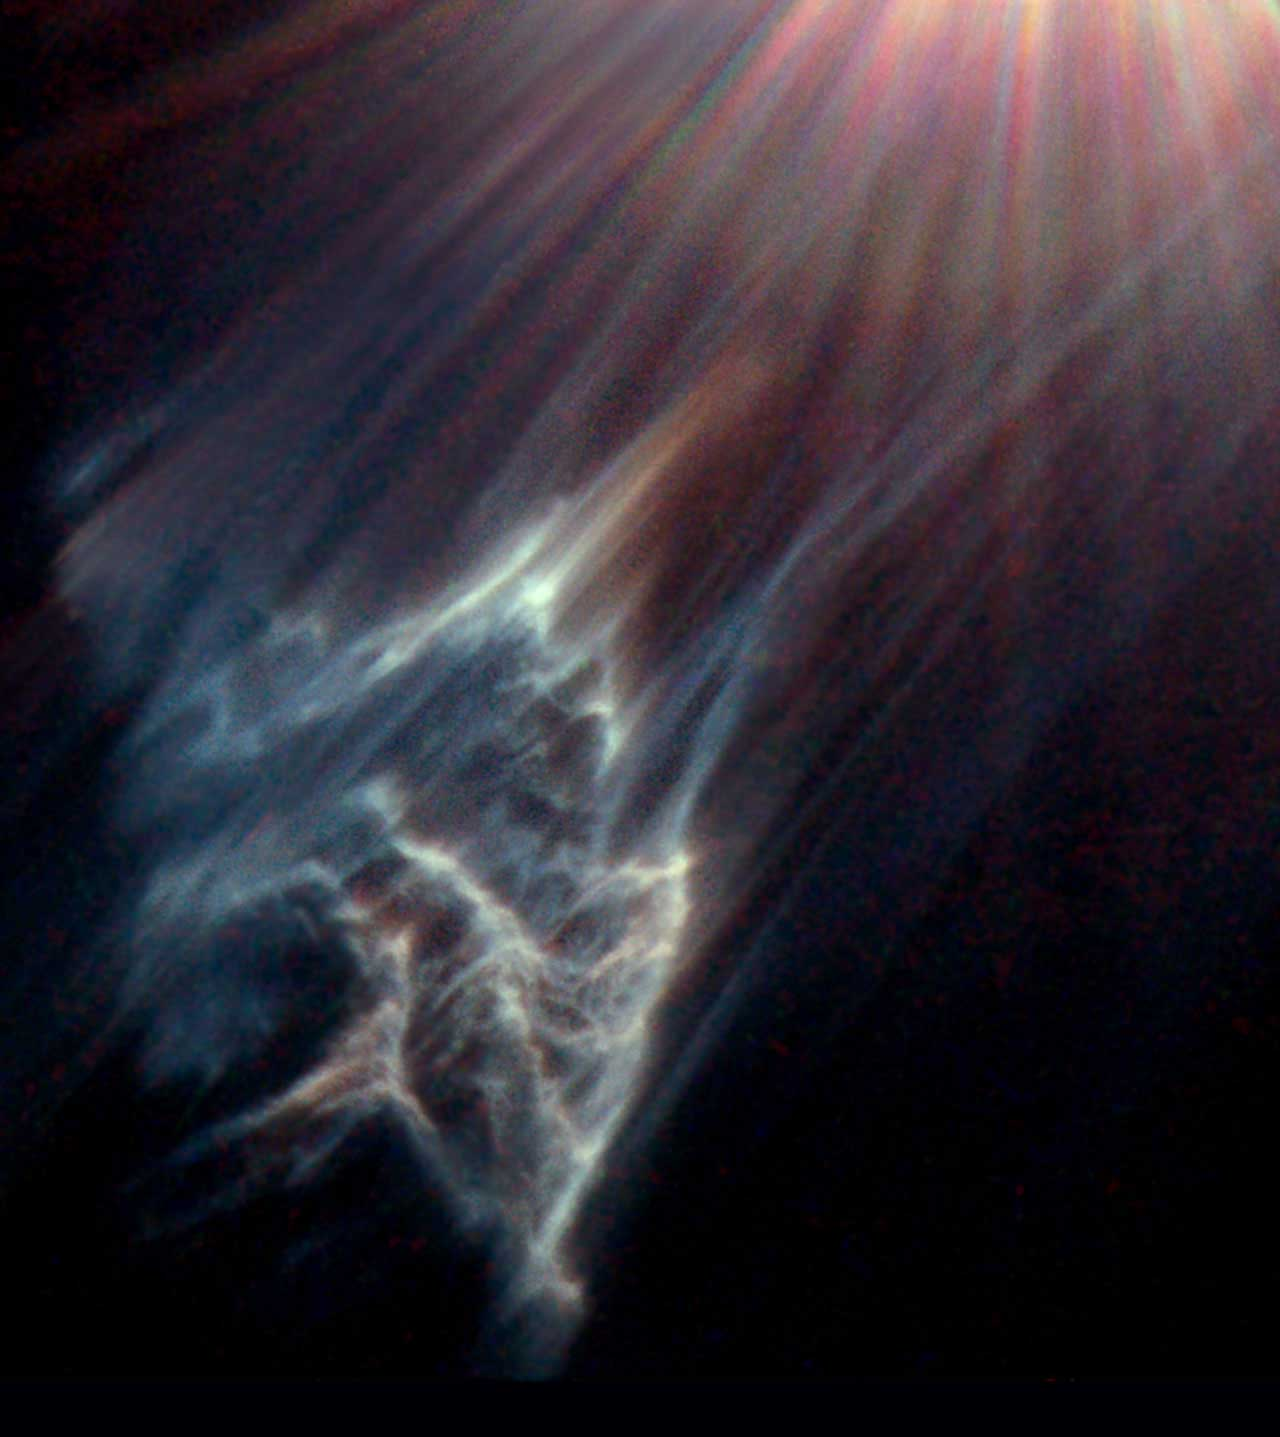 <strong>Pleiades</strong>:                                   This image shows the wispy tendrils of a dark interstellar cloud being destroyed by the passage of one of the brightest stars in the Pleiades star cluster. The star is reflecting light off the surface of pitch black clouds of cold gas laced with dust. These are called reflection nebulae. Resembling a small dipper, this star cluster lies in the constellation Taurus at a distance of about 380 light-years from Earth                                   <i>Image released on Dec. 6, 2000</i>